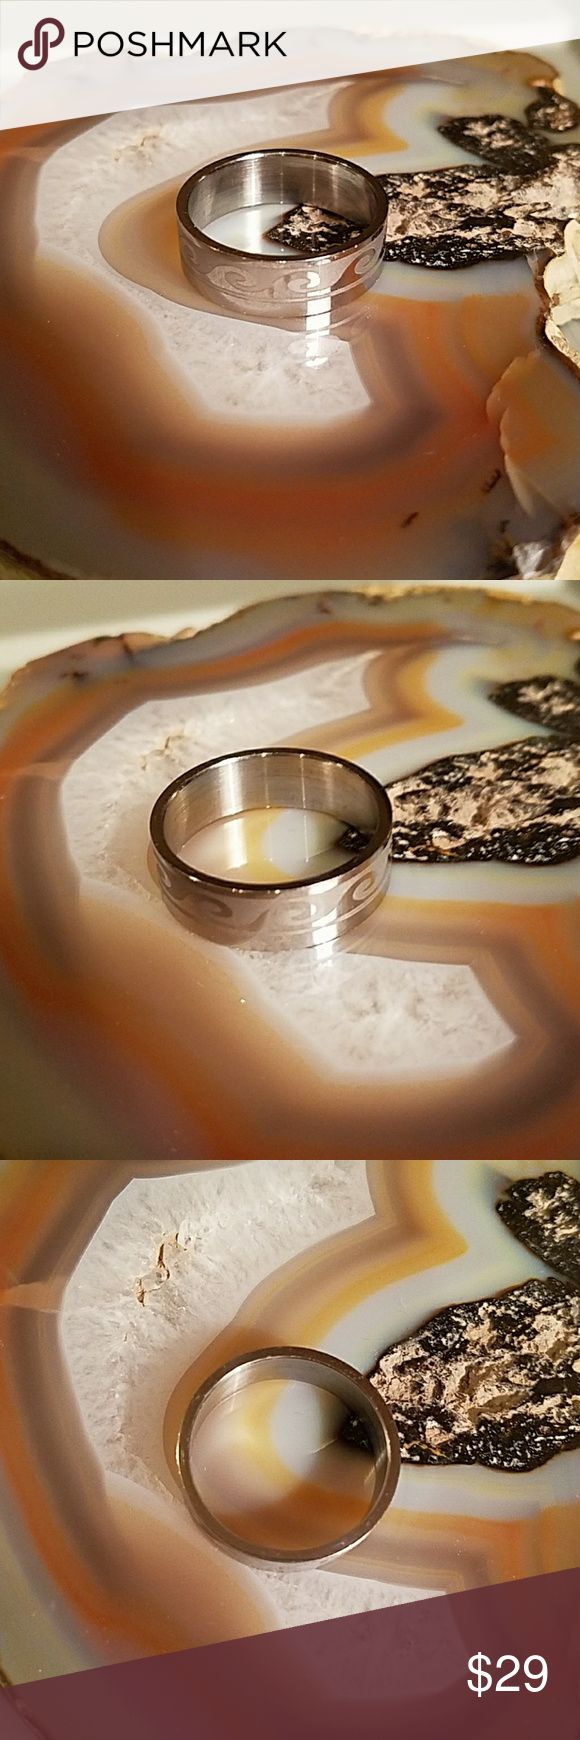 Men's Wave ring, SS, size 14 Men's wave ring,  size 14  ~~has weight 7.0 gr   ~~stainless steel, see fine scratches top n bottom not on waves  ~~nice looking ring for any man  Offers welcome Accessories Jewelry